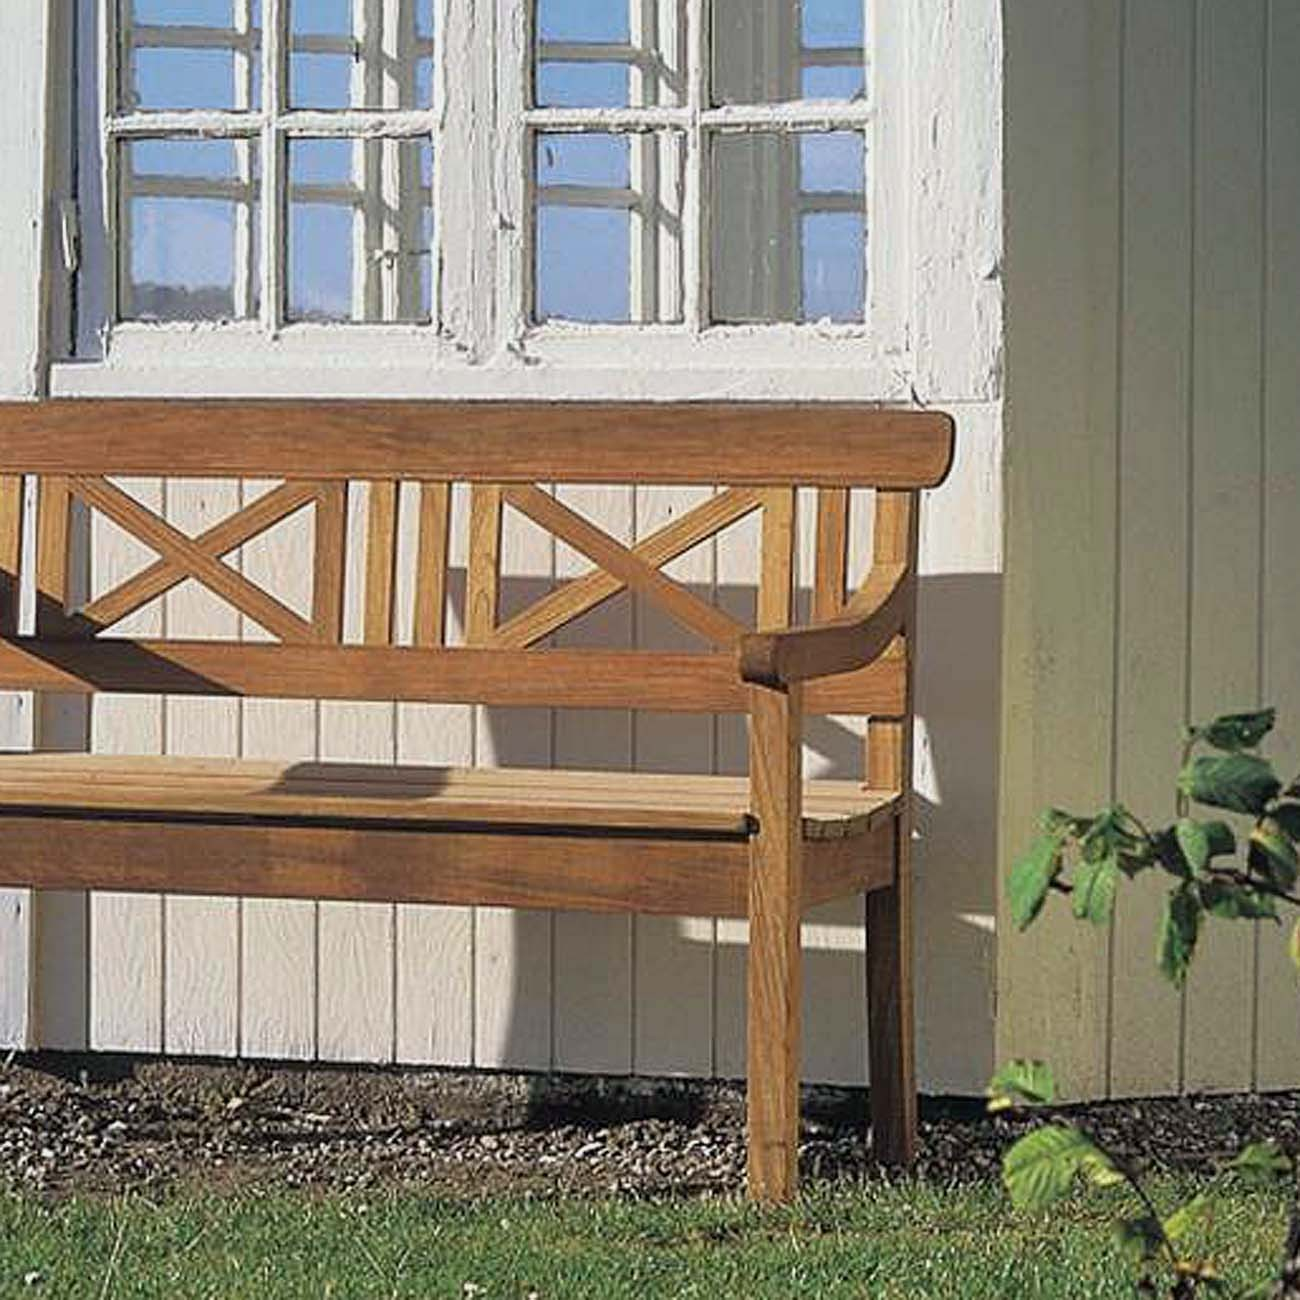 skagerak drachmann bank 120 cm teak gartenbank s1040505 eingang garten gartenm bel gartenb nke. Black Bedroom Furniture Sets. Home Design Ideas